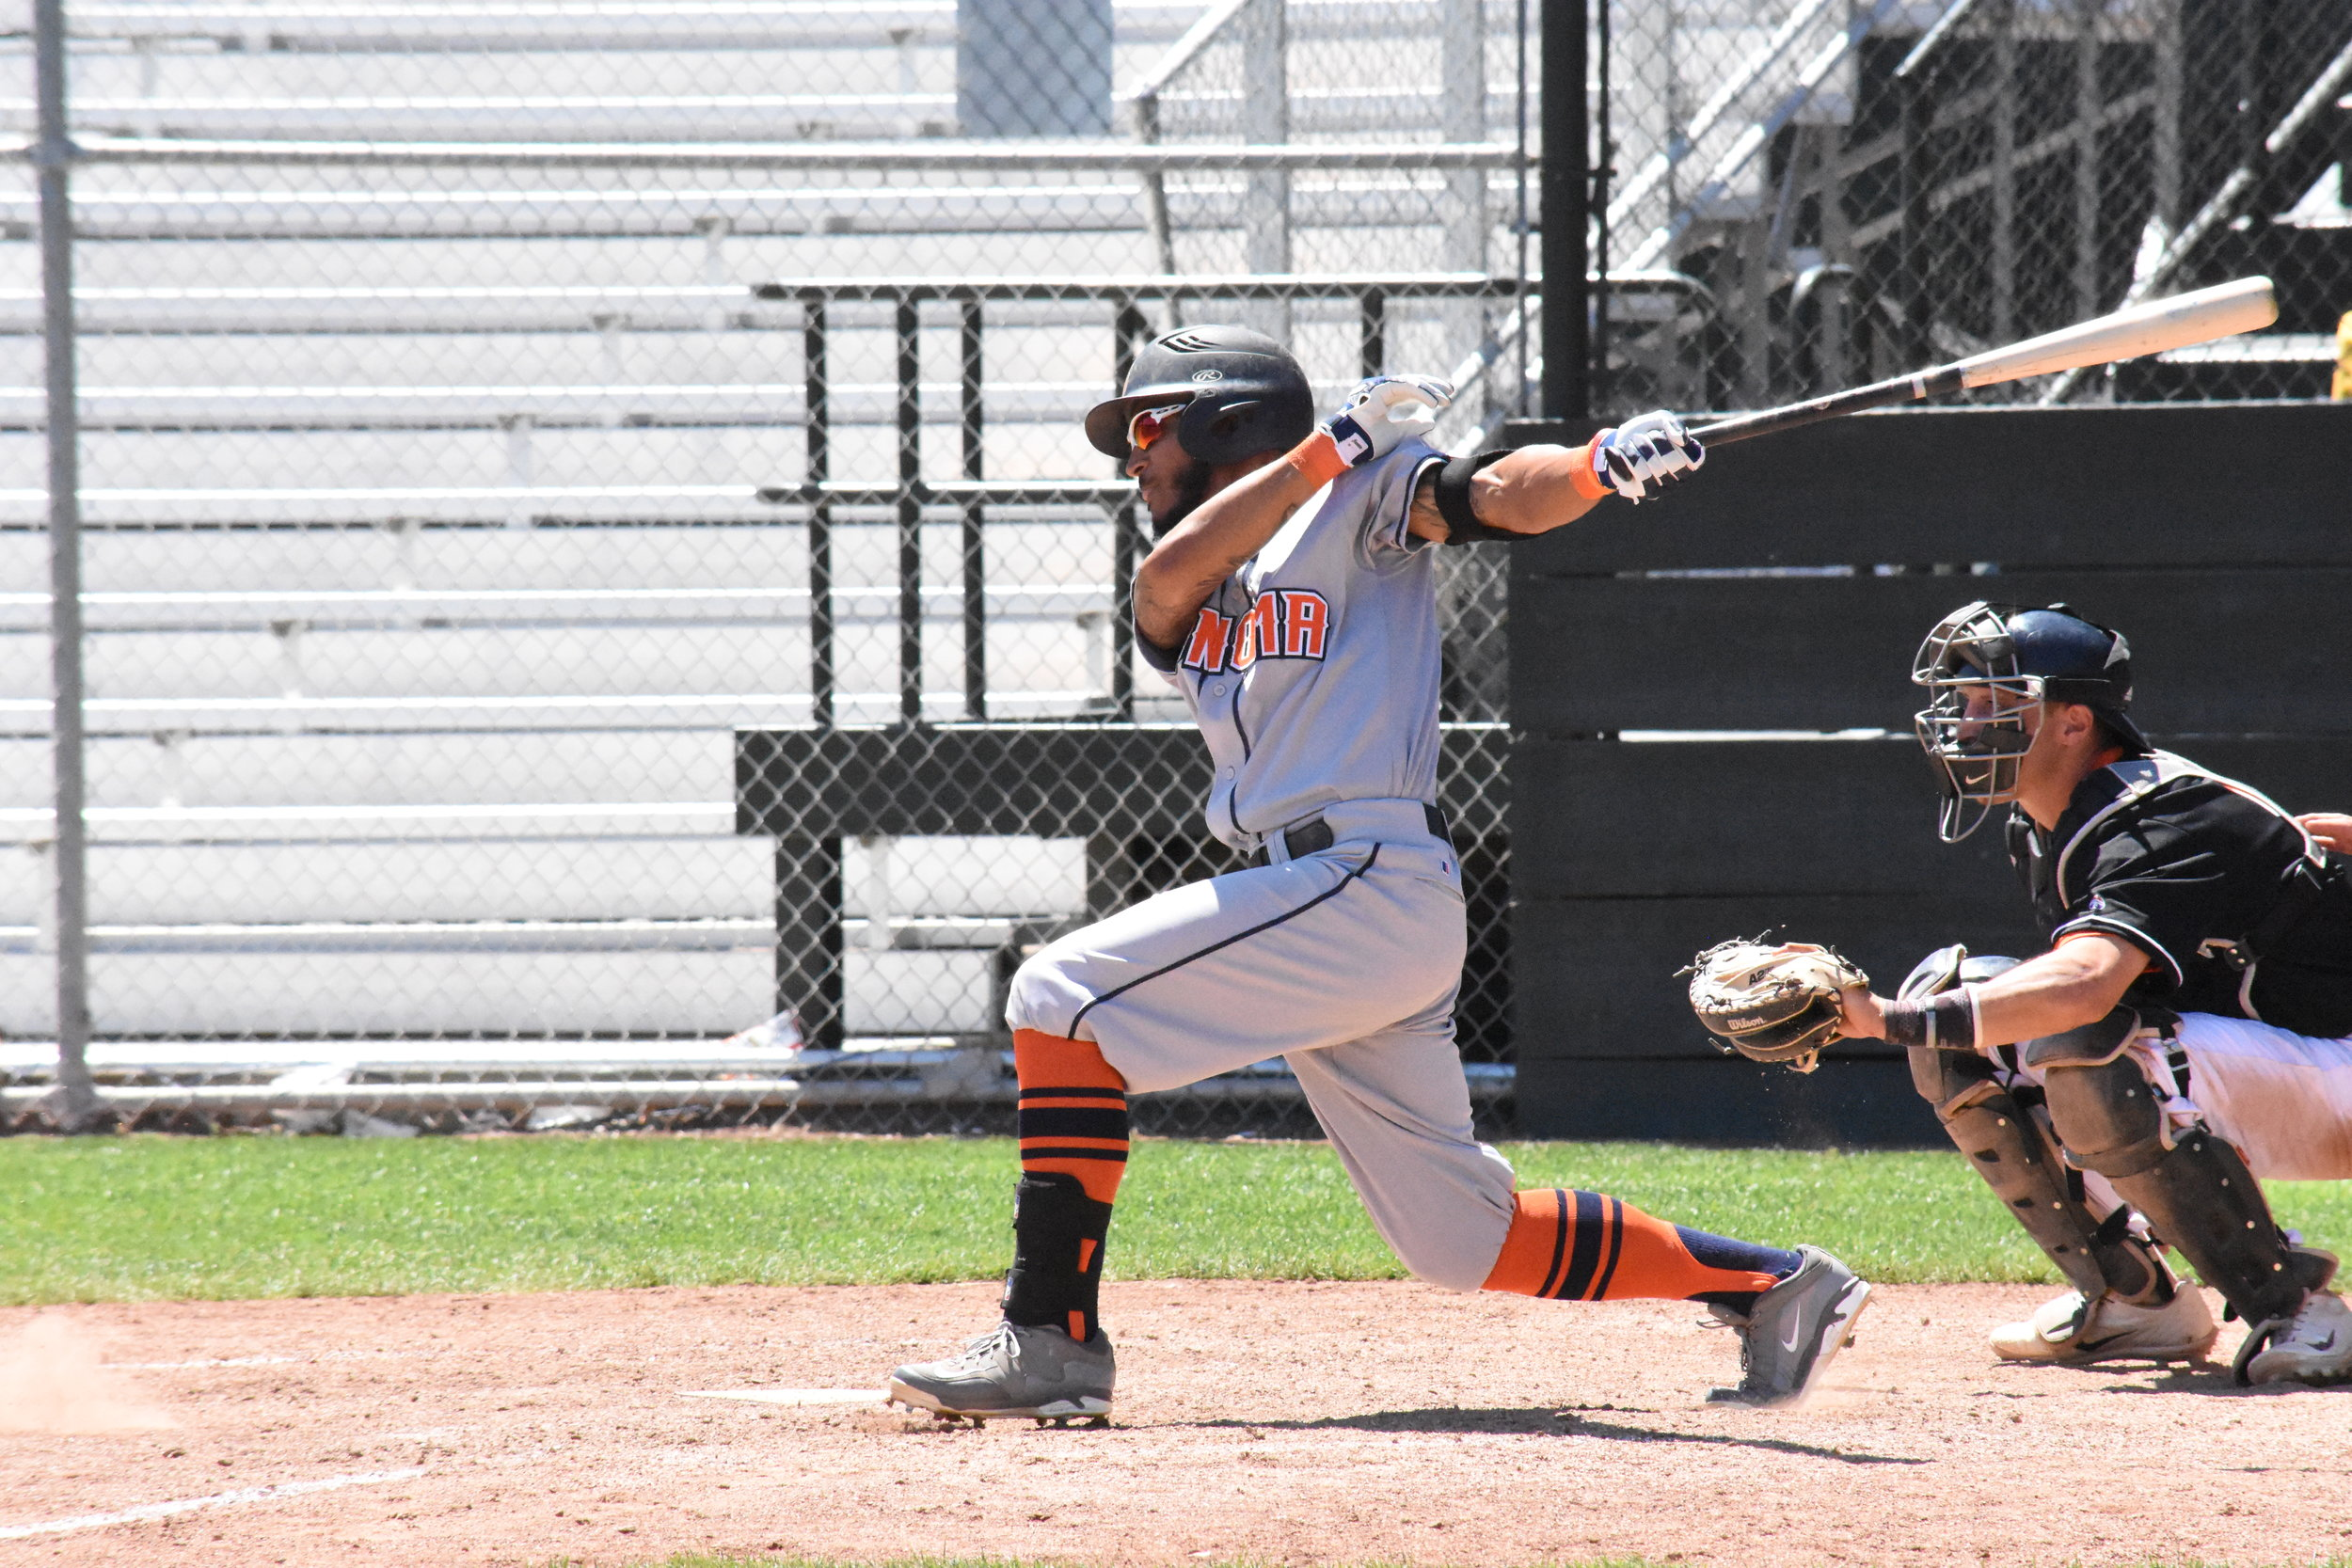 Center fielder Matt Hibbert went 3-6 in the Sonoma Stompers' 13-1 rout of the Pittsburg Diamonds Sunday, scoring two runs and driving in three.(James W. Toy III / Sonoma Stompers)